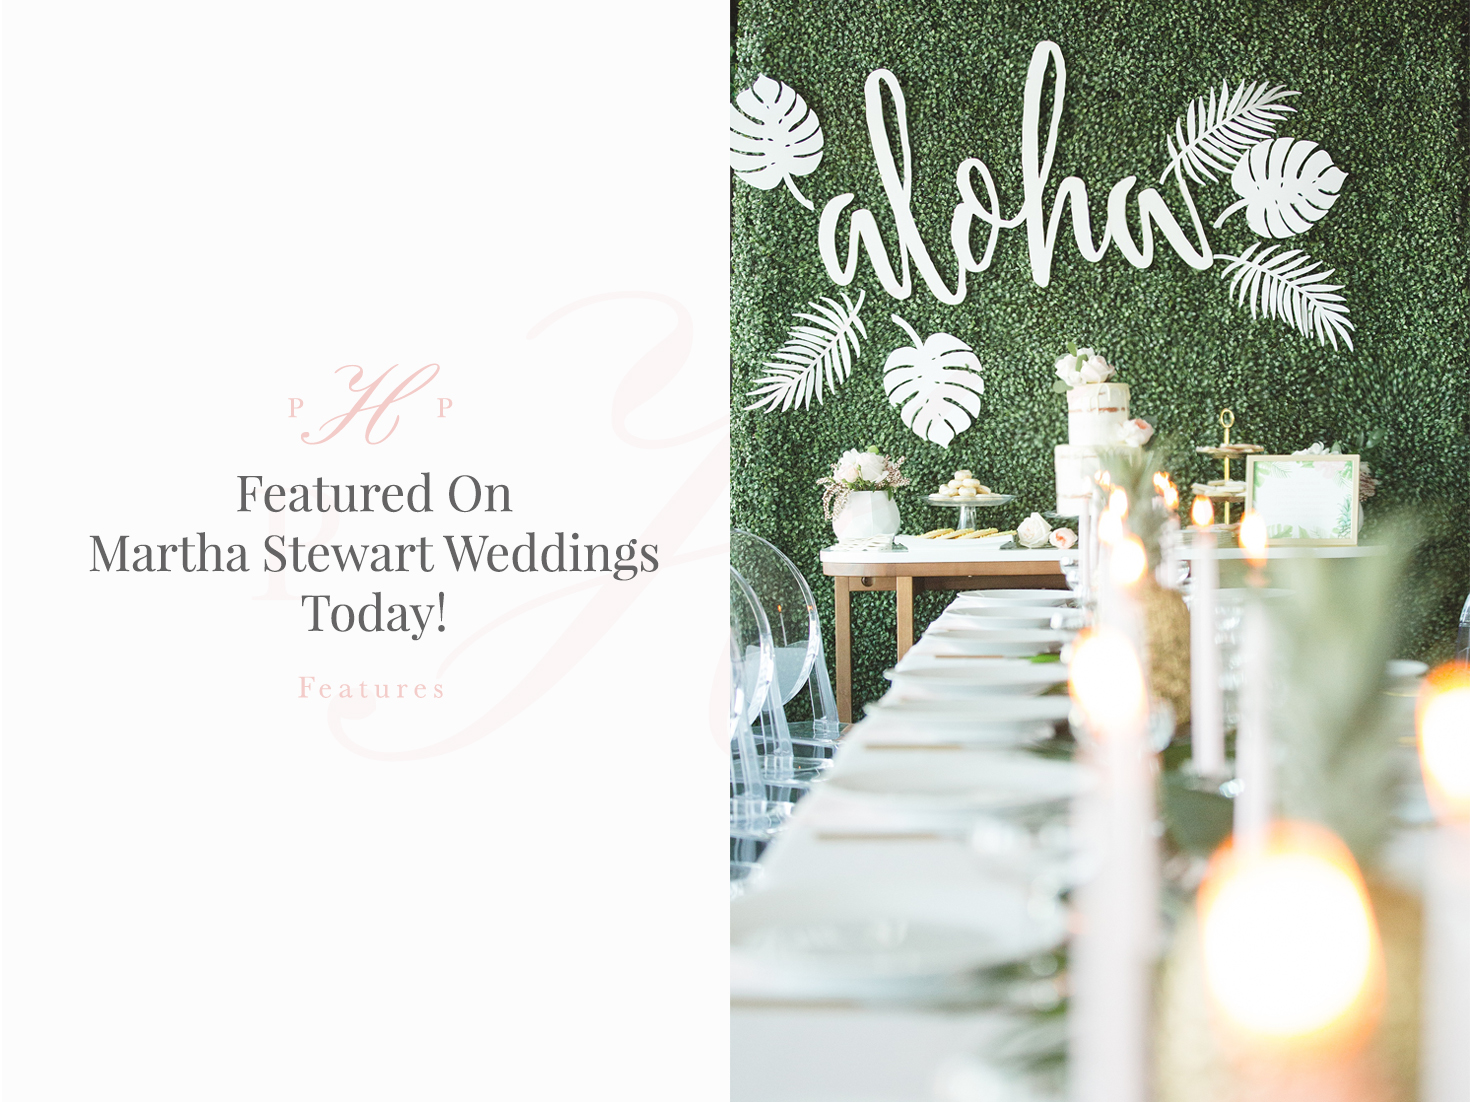 We're featured on Martha Stewart Weddings today!